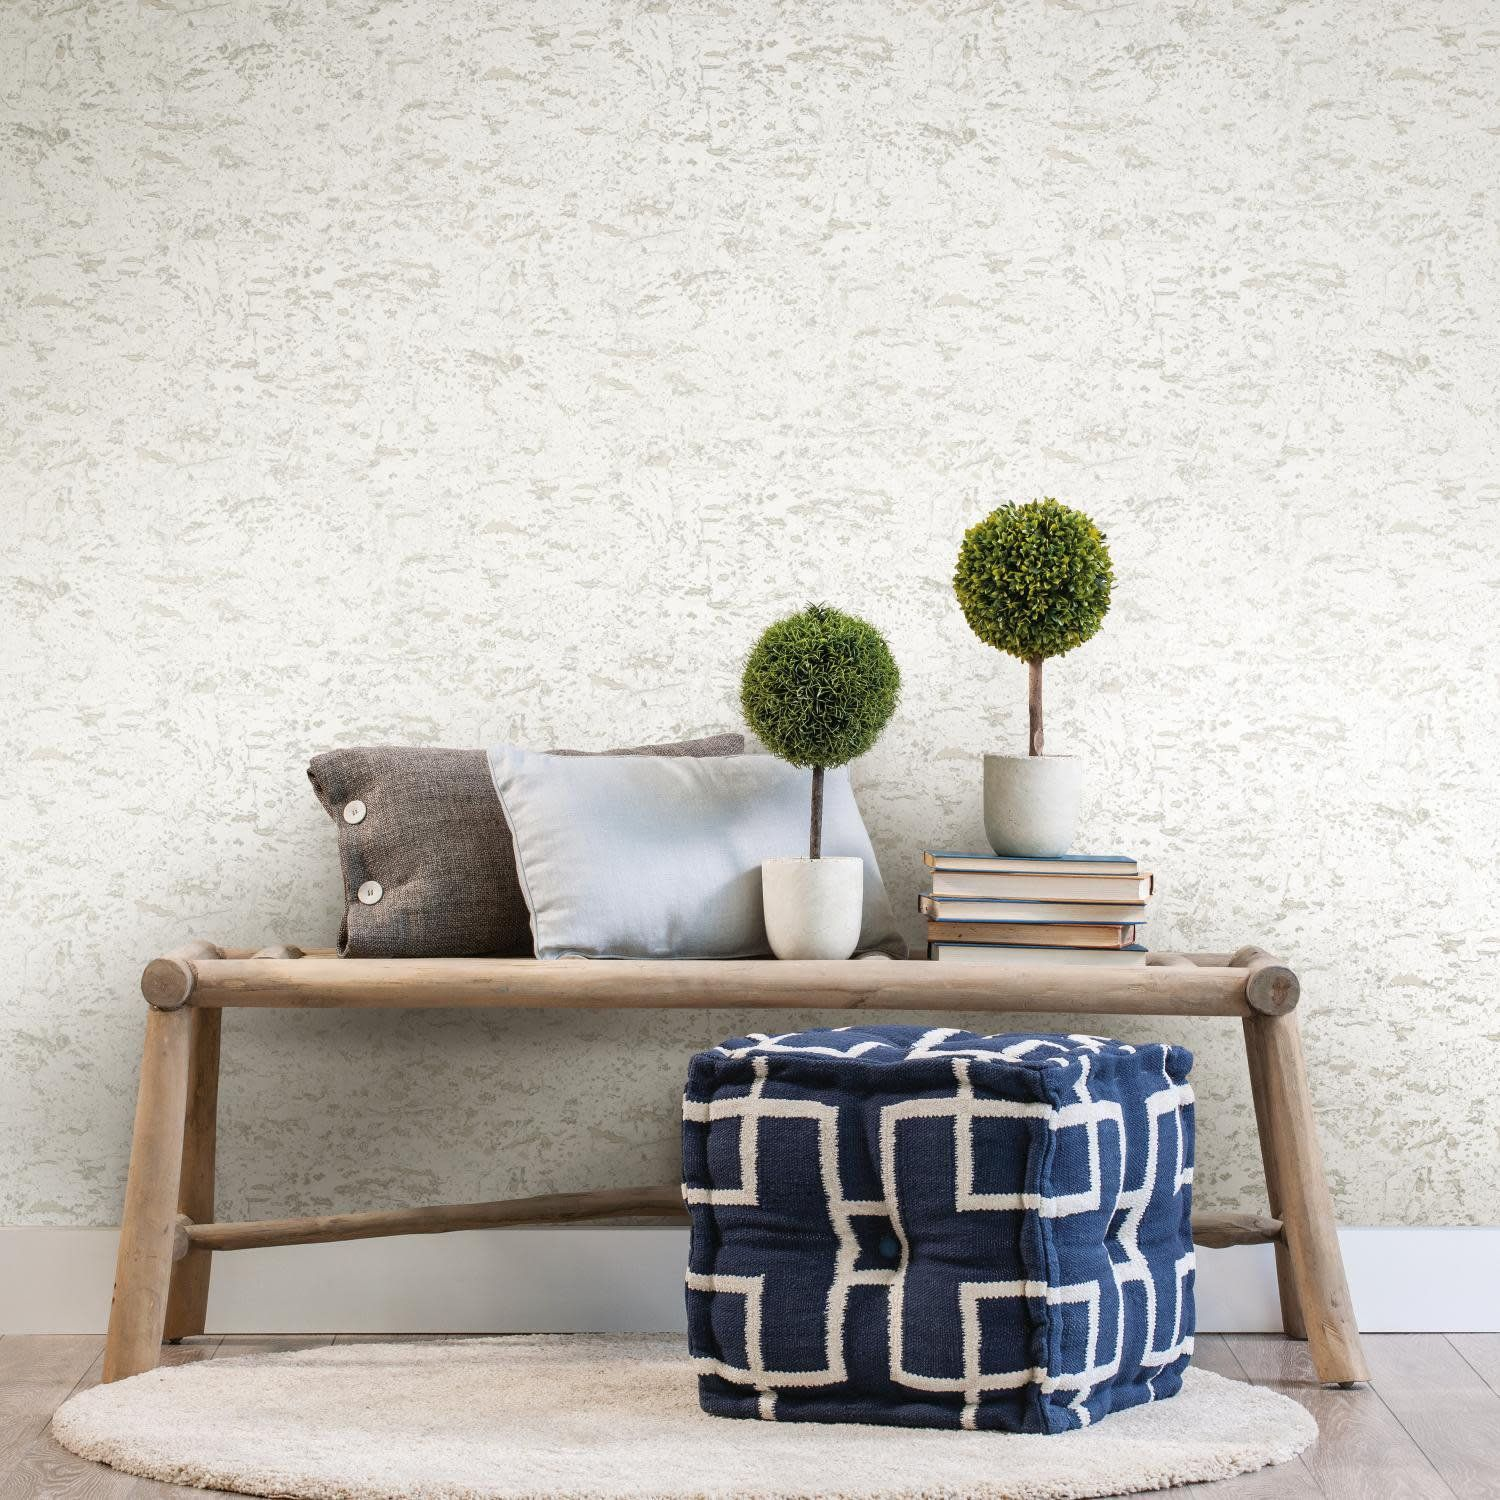 Roommates Faux Cork White Peel And Stick Wallpaper Abstract Walmart Com Affordable Decor Peel And Stick Wallpaper Decor